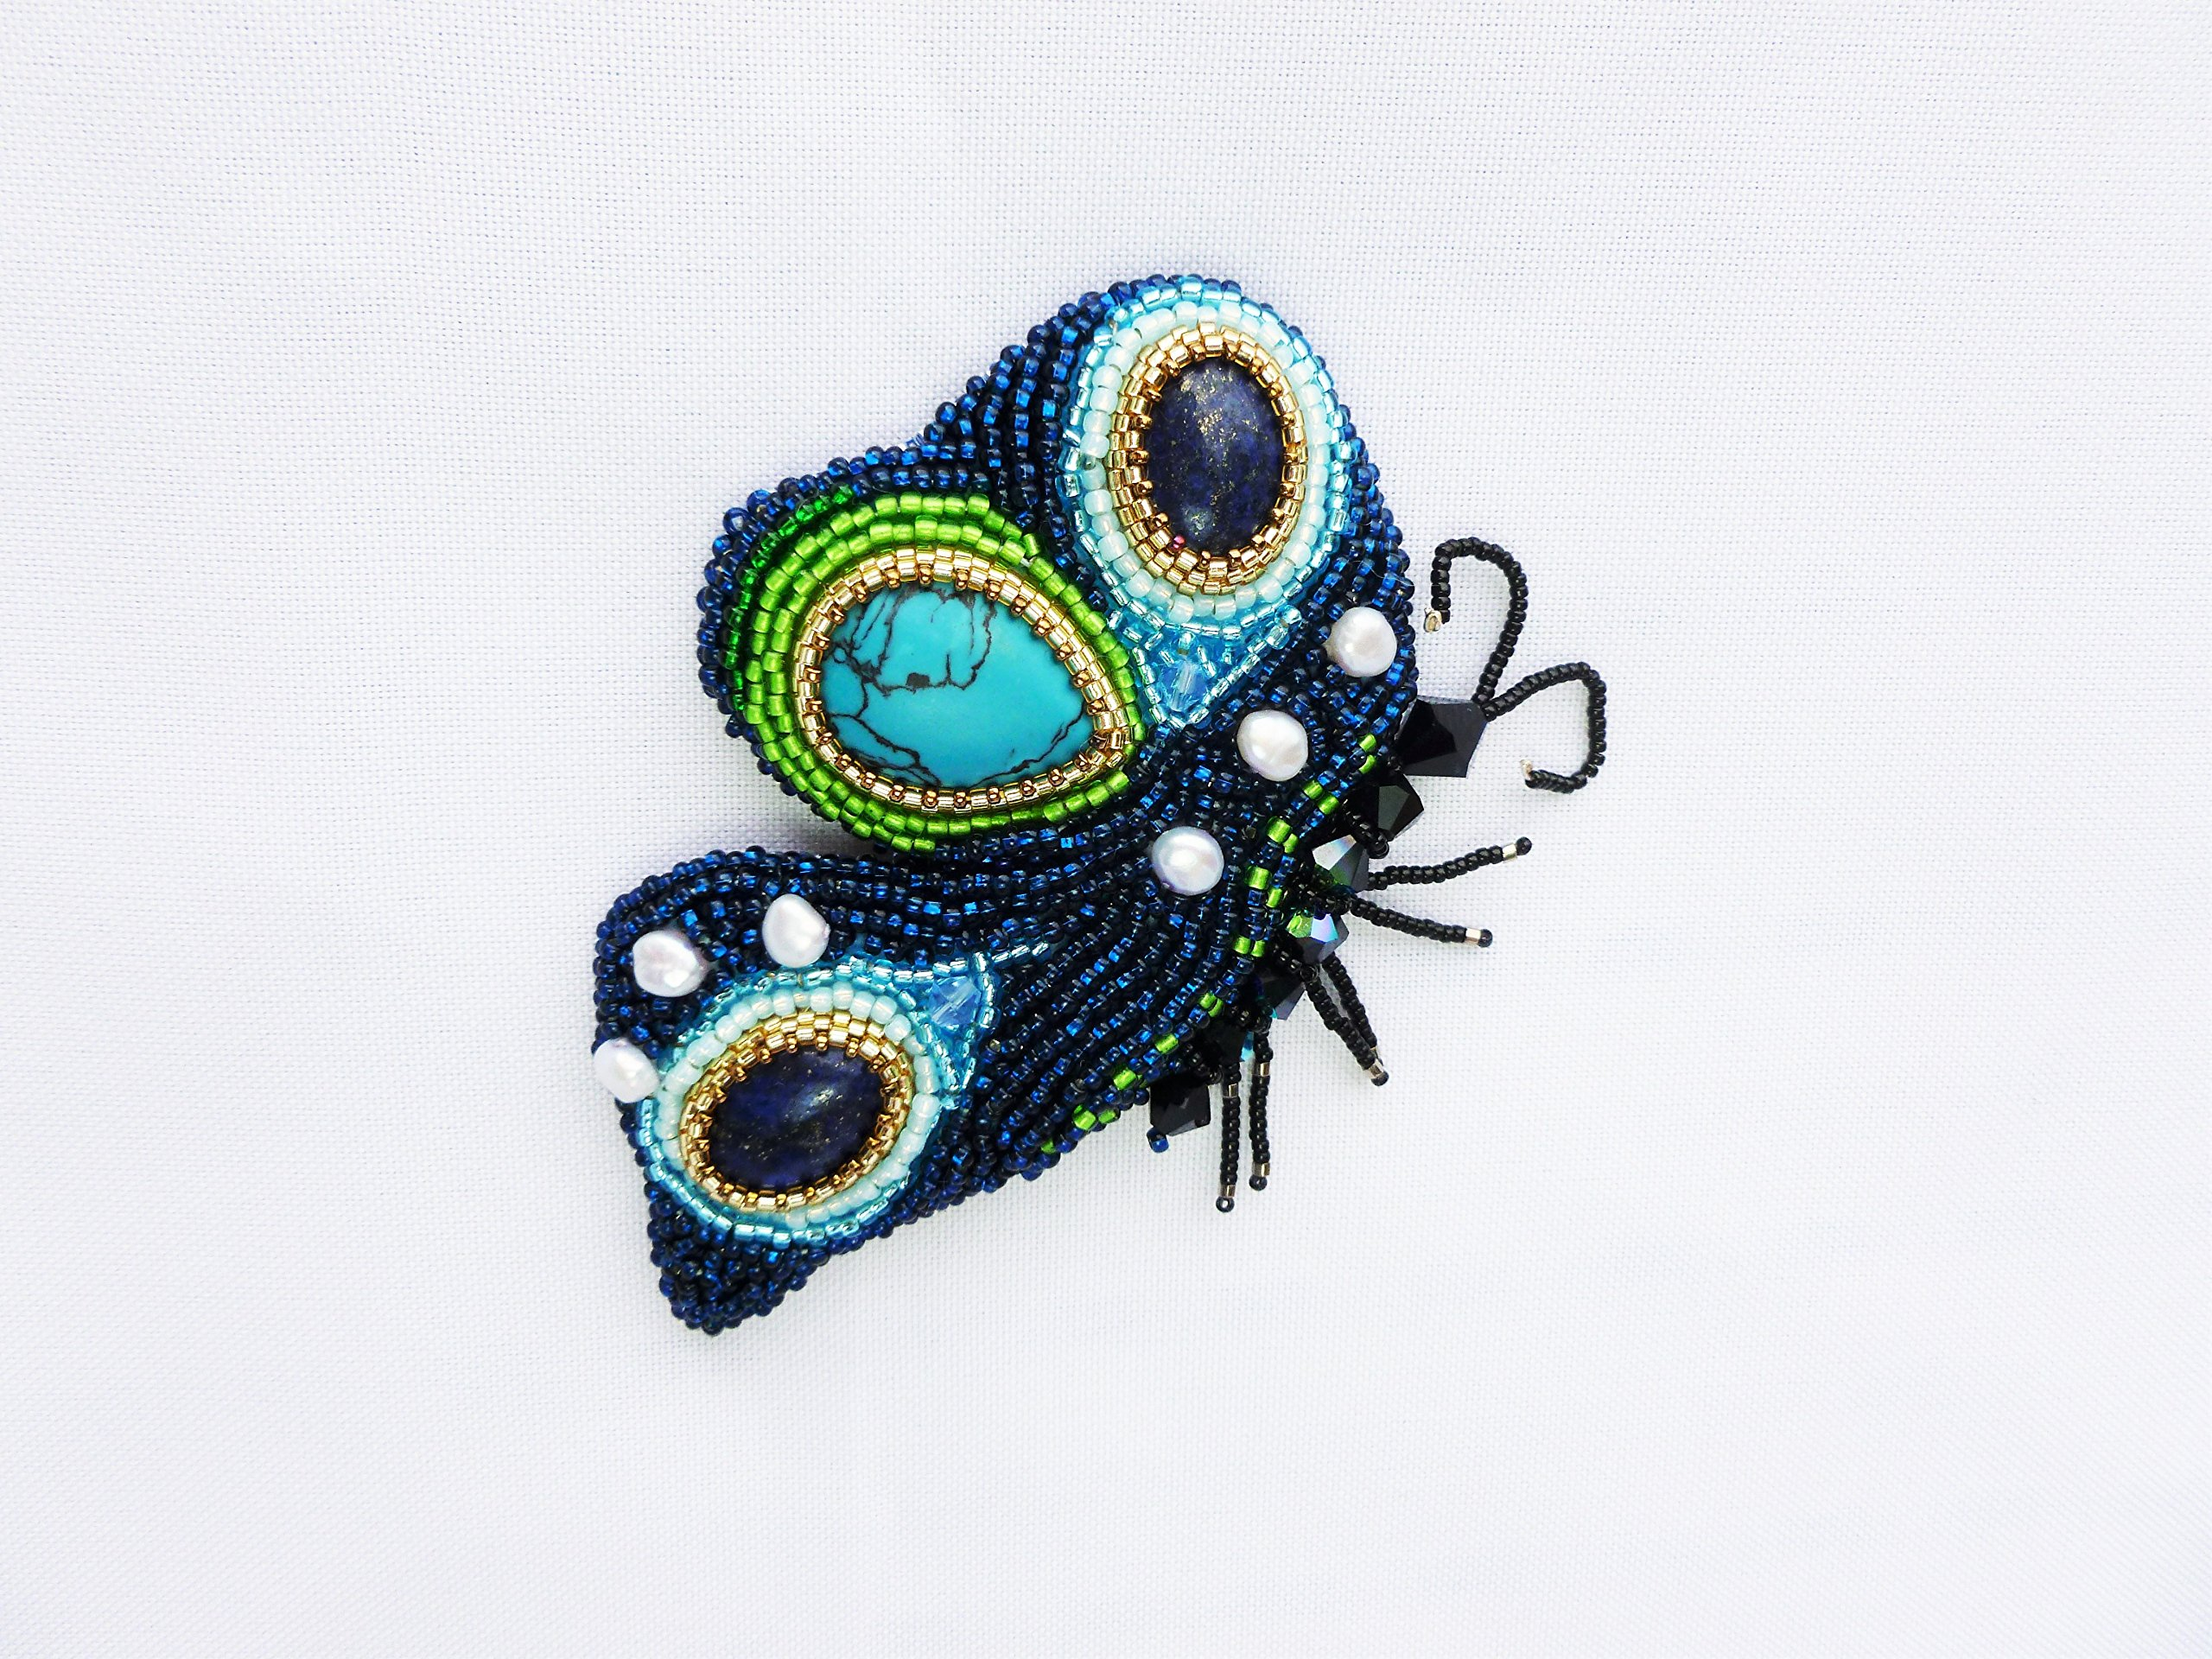 Insect Brooch, Butterfly brooch, Gemstone embroidered butterfly, Fashion statement brooch, Bead embroidered brooch, large Buttefly brooch